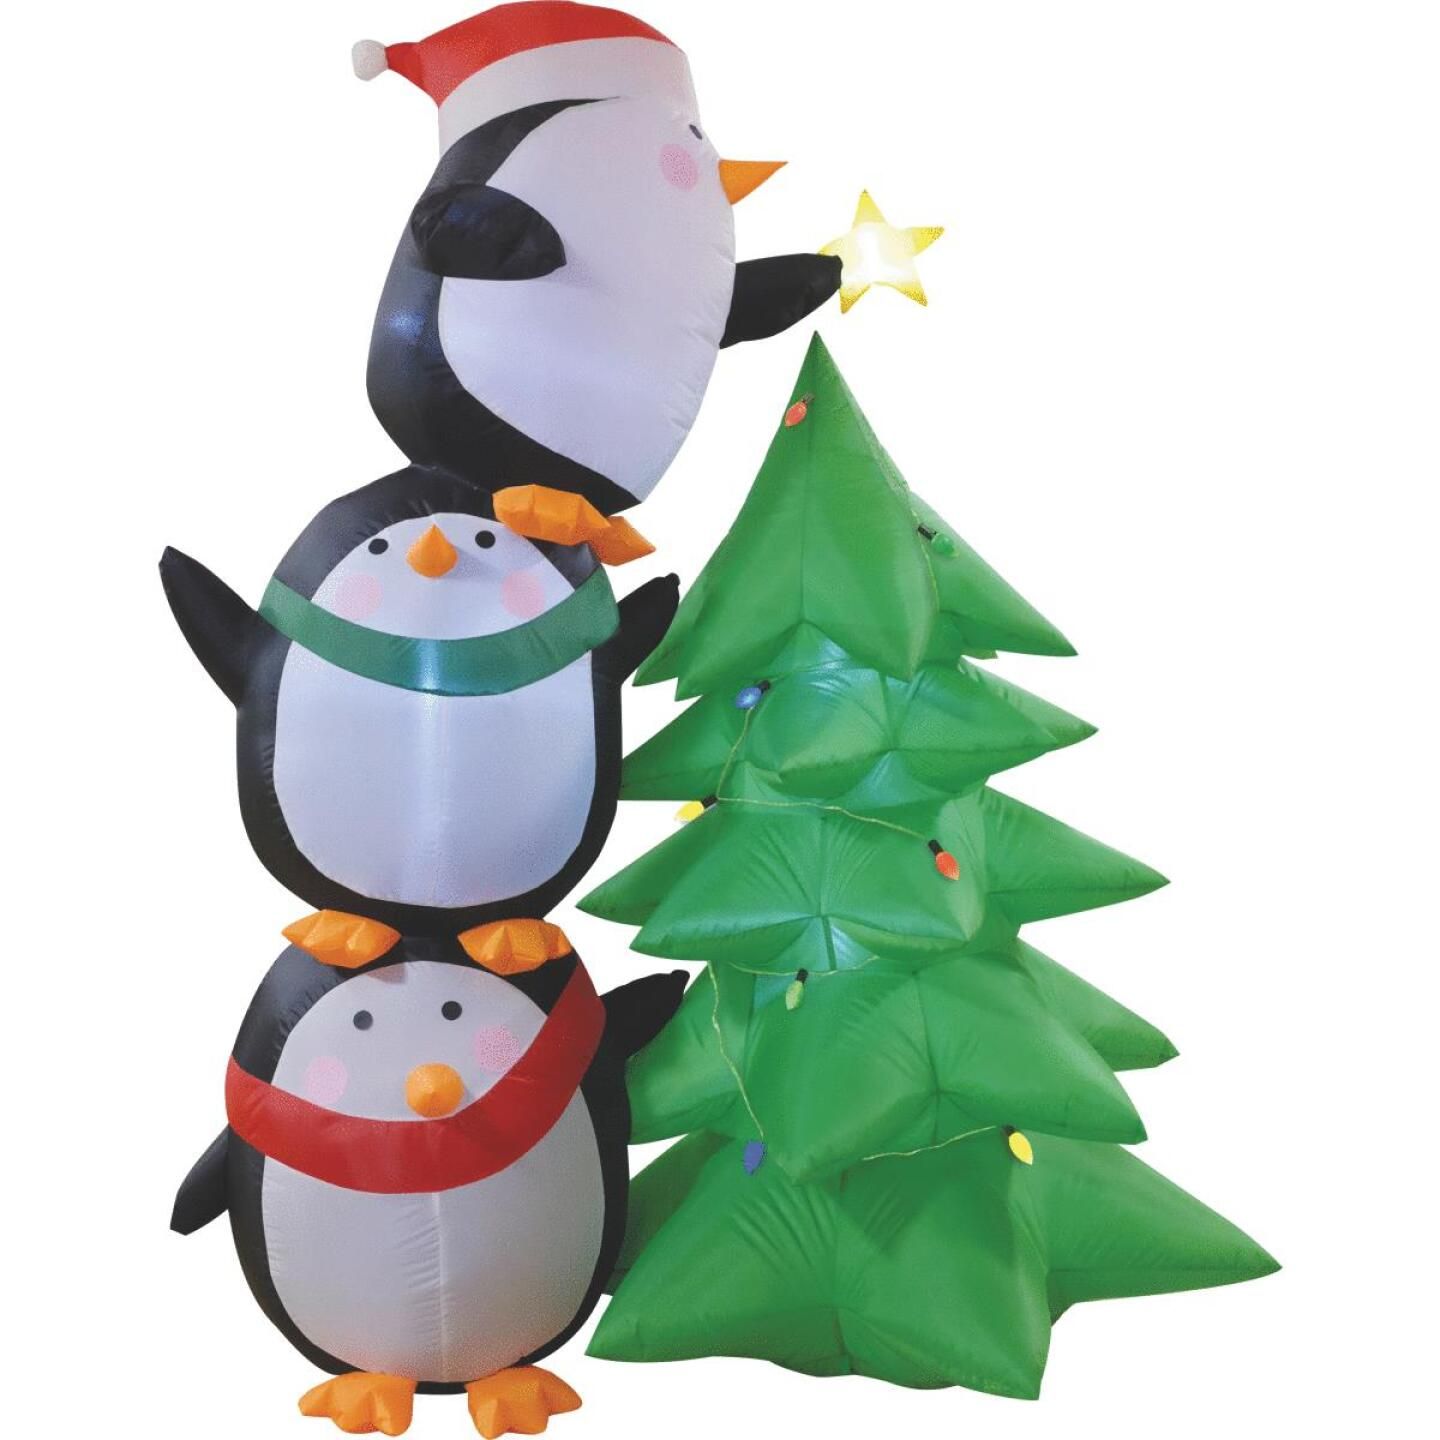 Southern Joy 7 Ft. Penguin Trim the Tree Airblown Inflatable Image 1